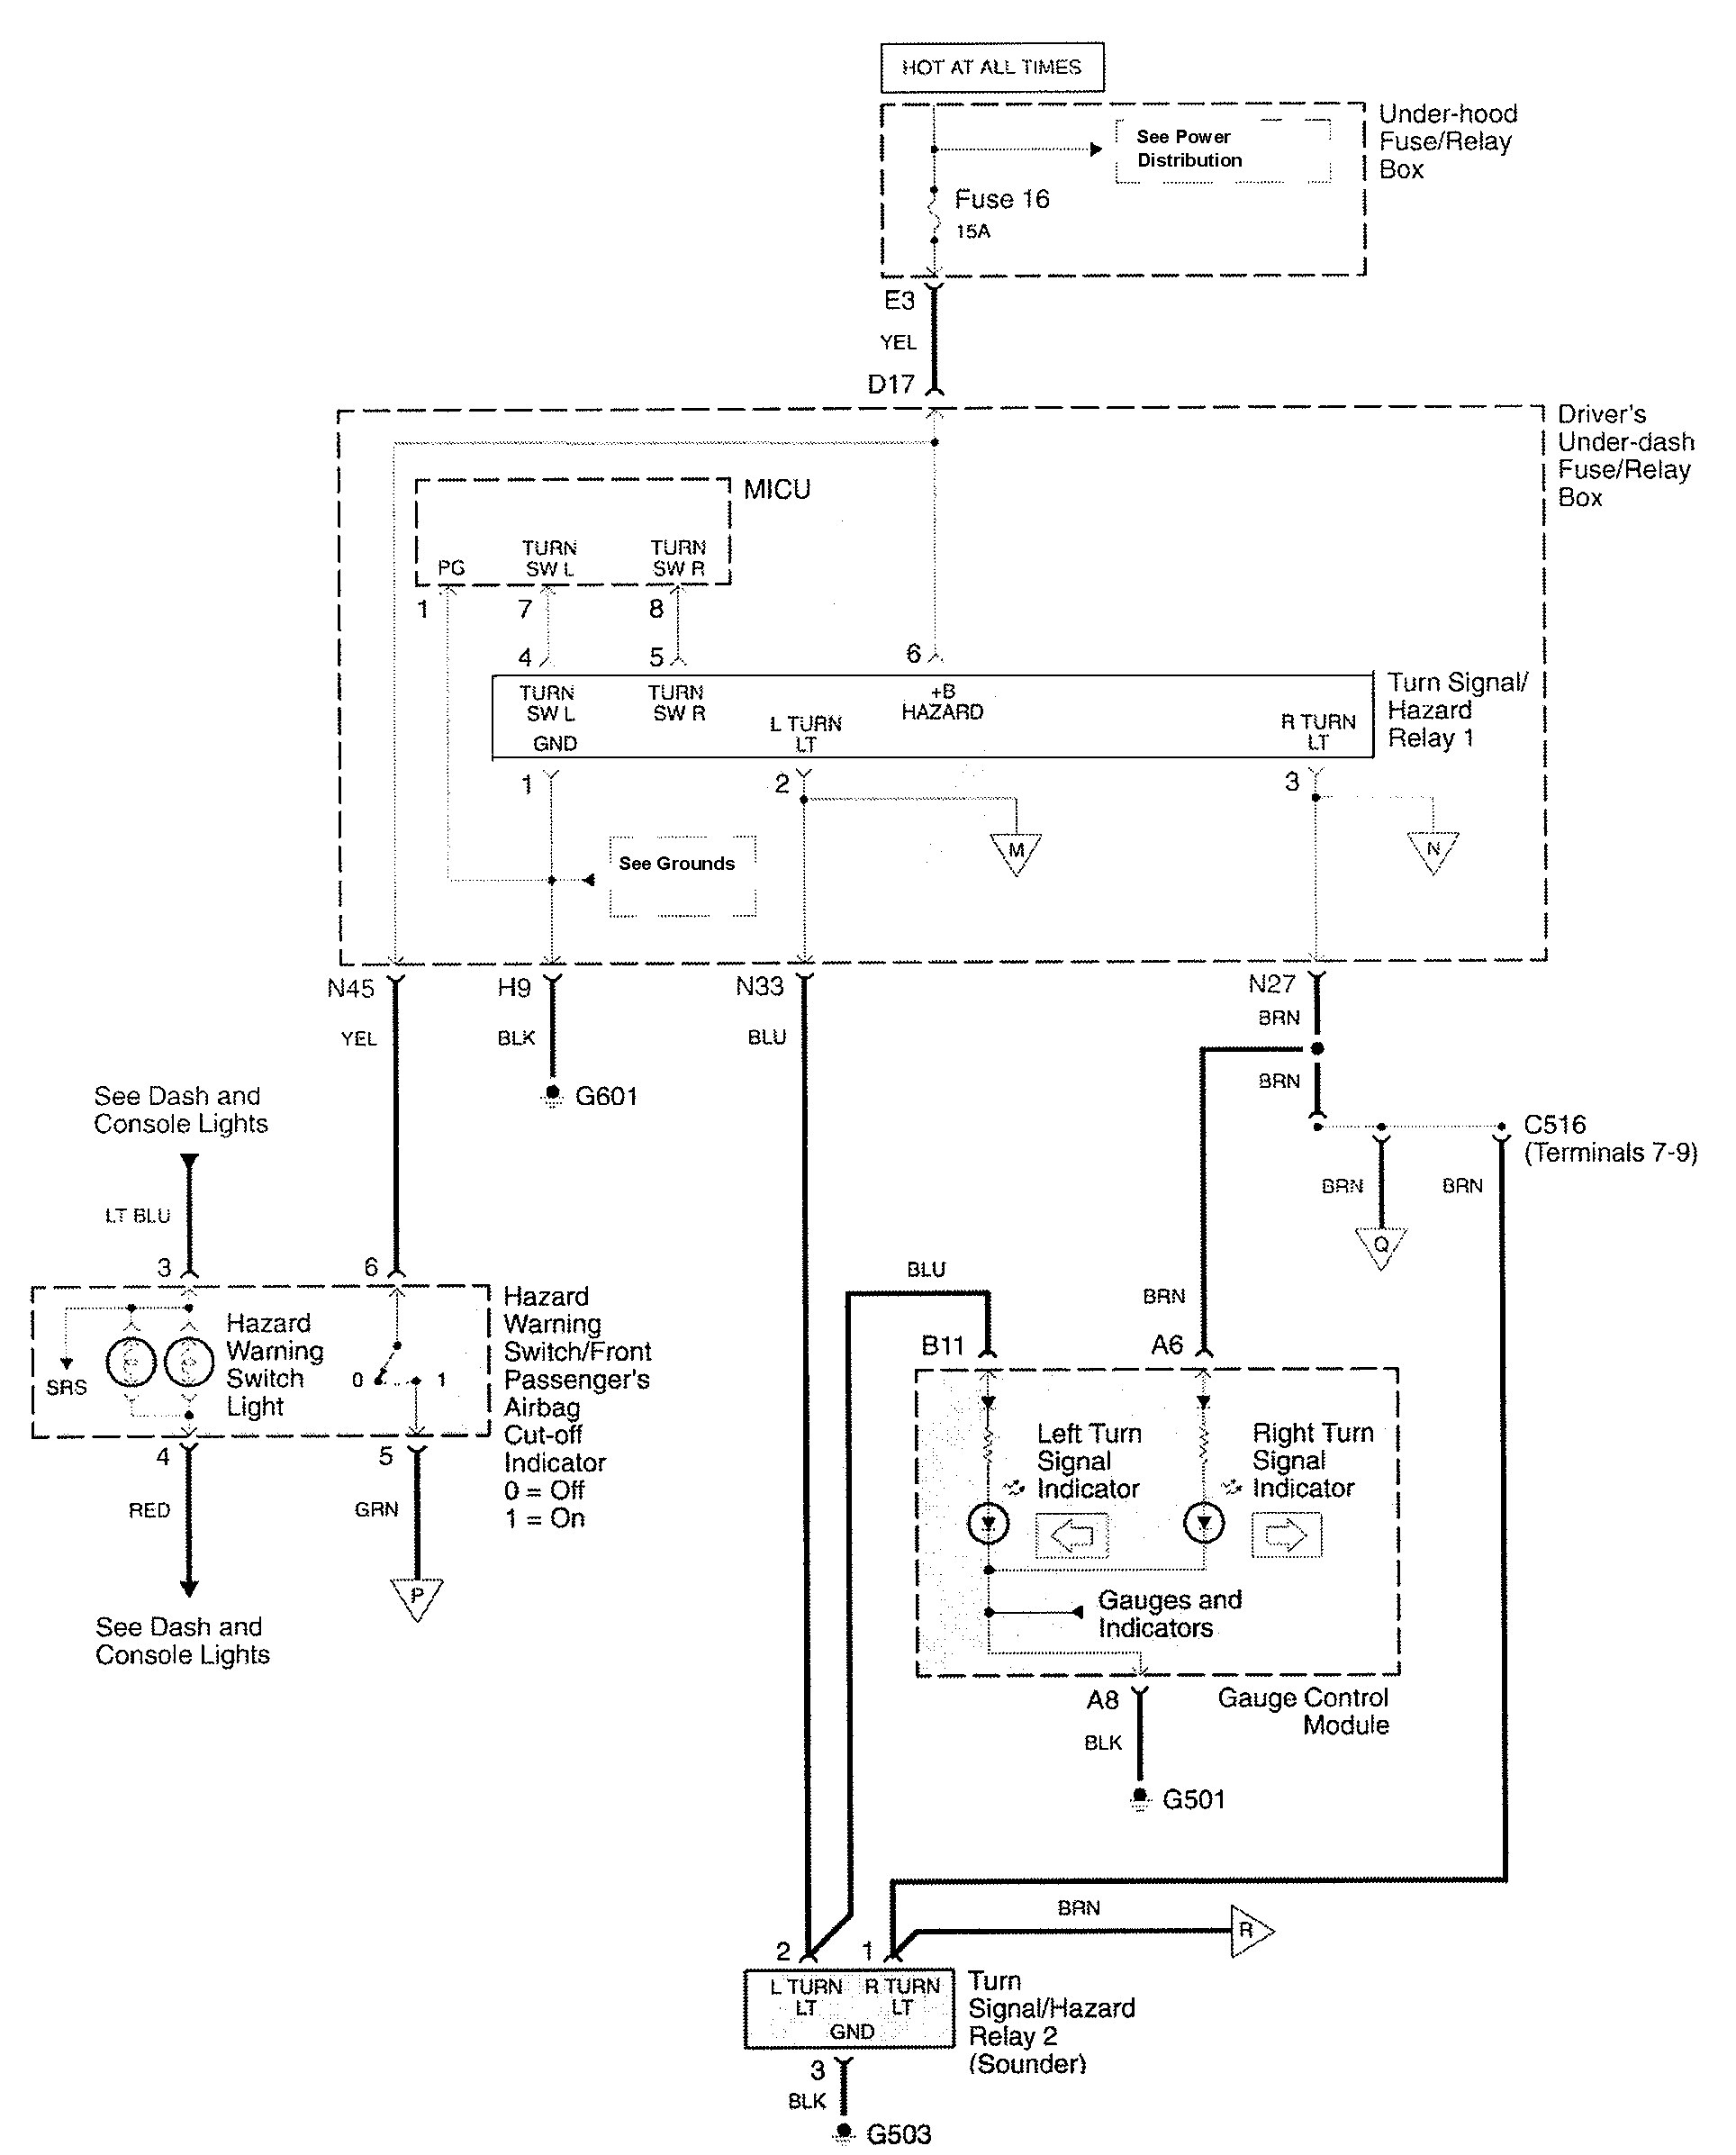 wiring diagram for spotlights doorbell installation ballast hid lighting free image